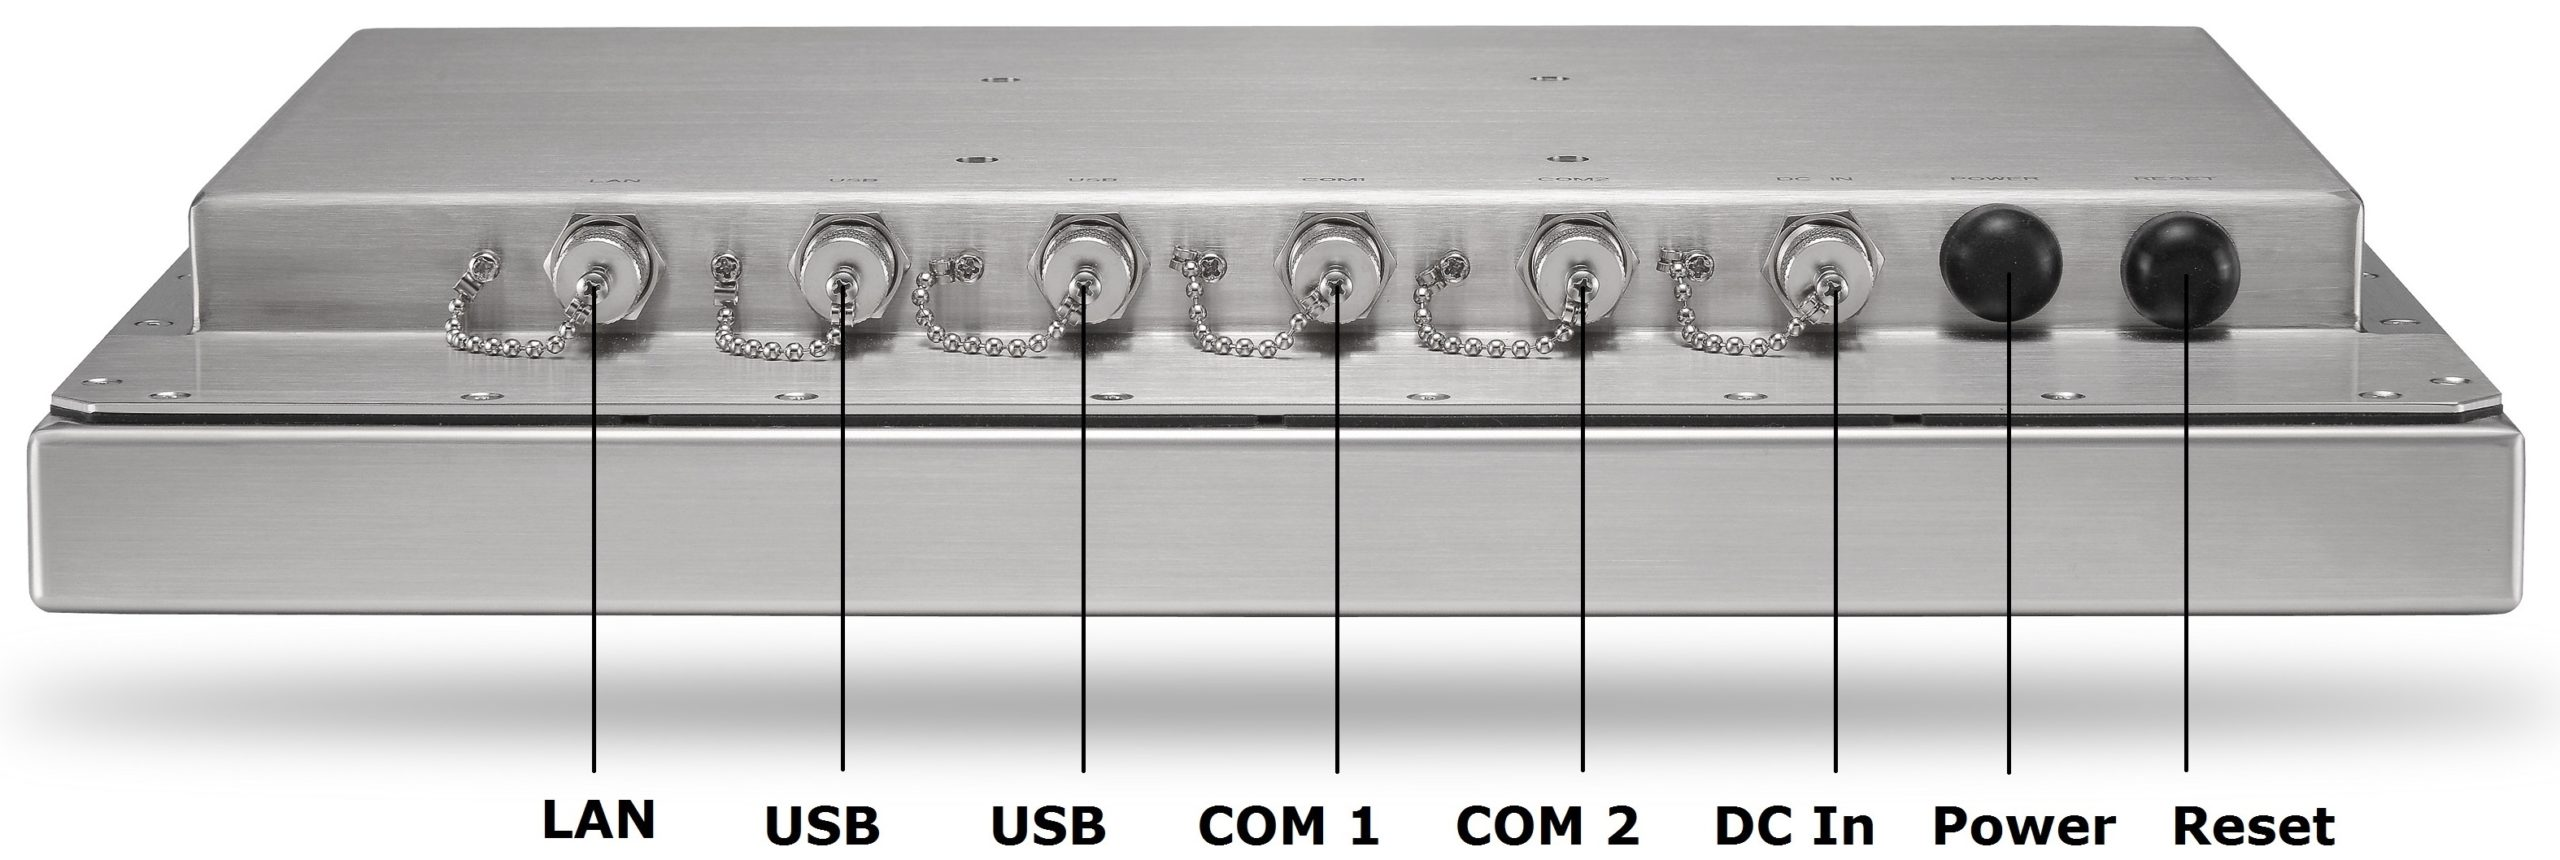 Stainless Steel Computer Inputs Outputs TS-4010-15